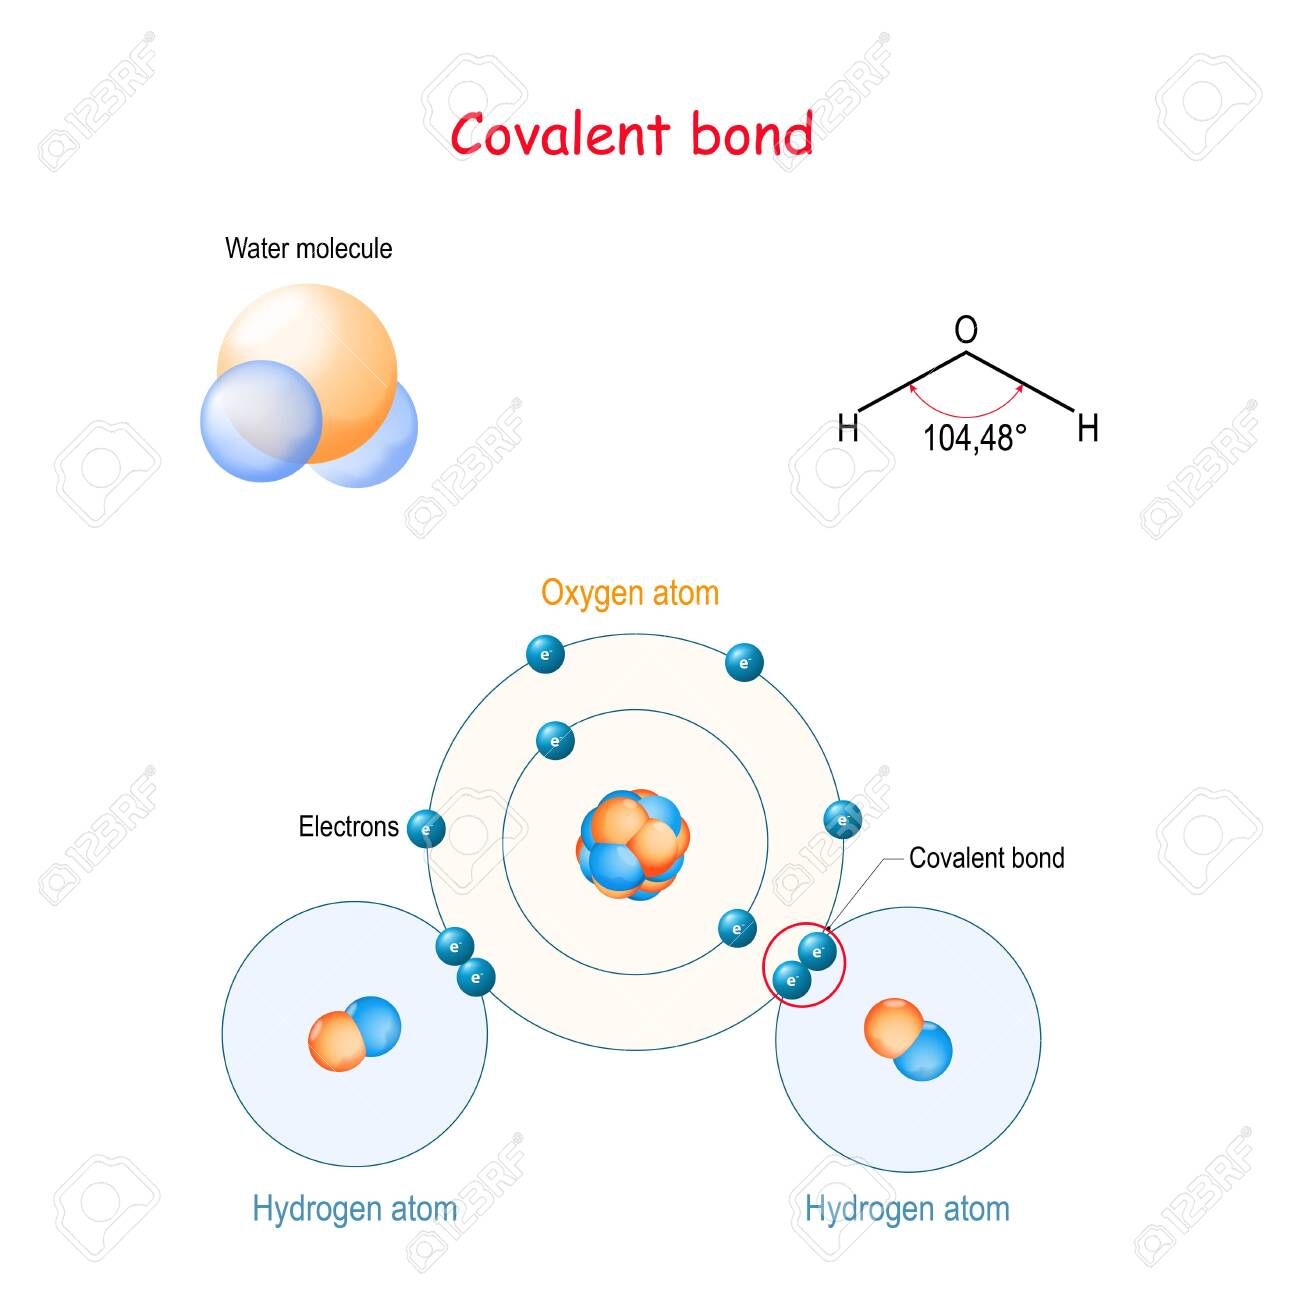 Covalent bond for example water molecule (H2O). is a molecular.. on